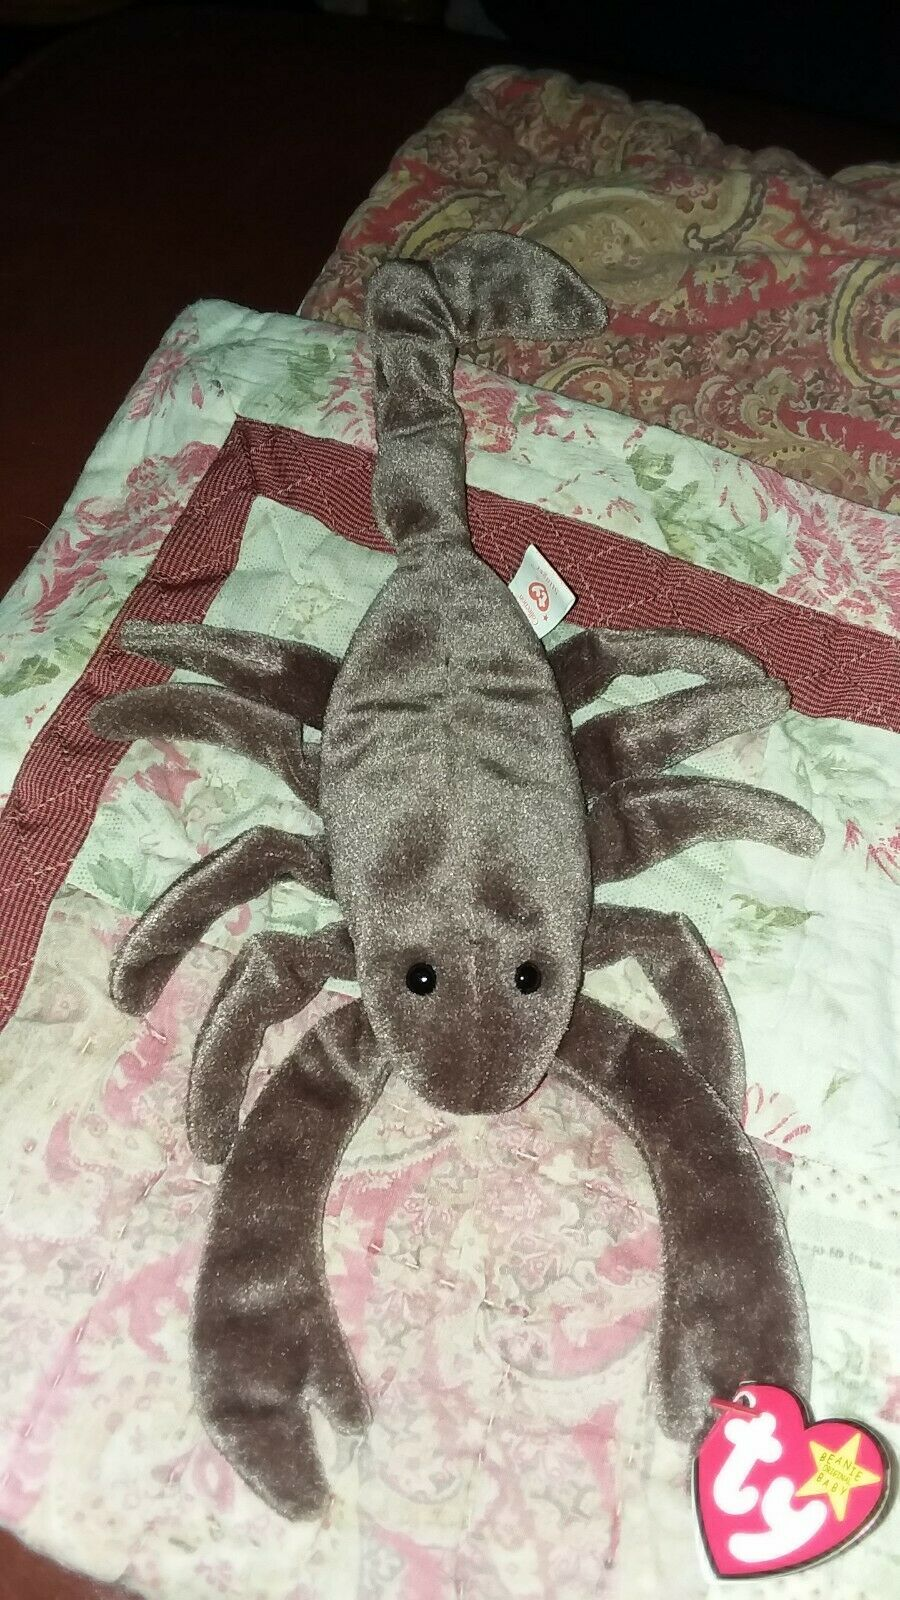 STINGER THE SCORPION September 29, 1997 Toy TY Beanie Beanie Beanie Baby Babies  Retired 6f2045